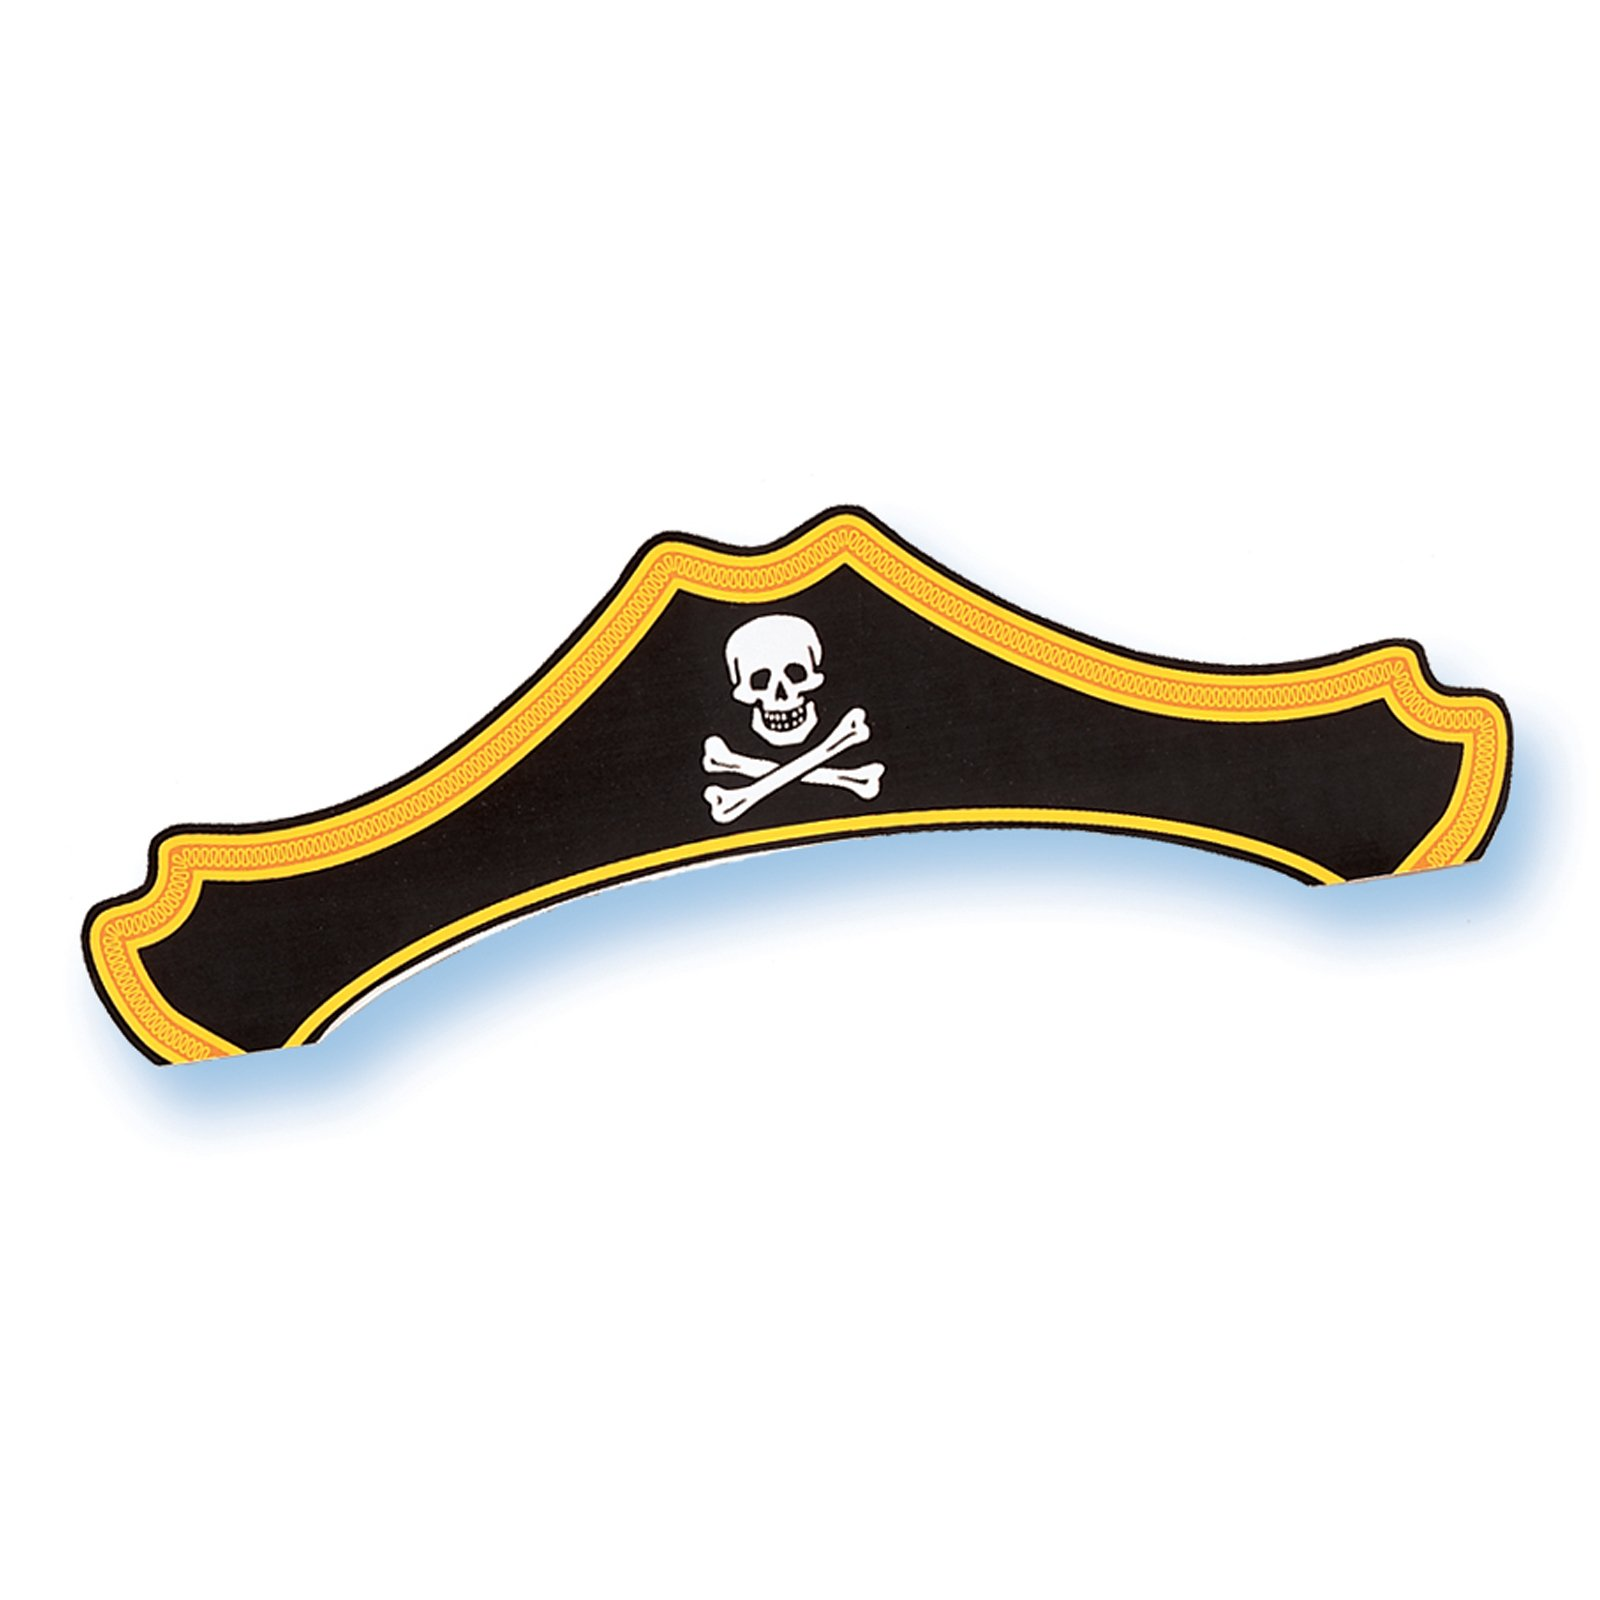 Pirate Hats (8 count)